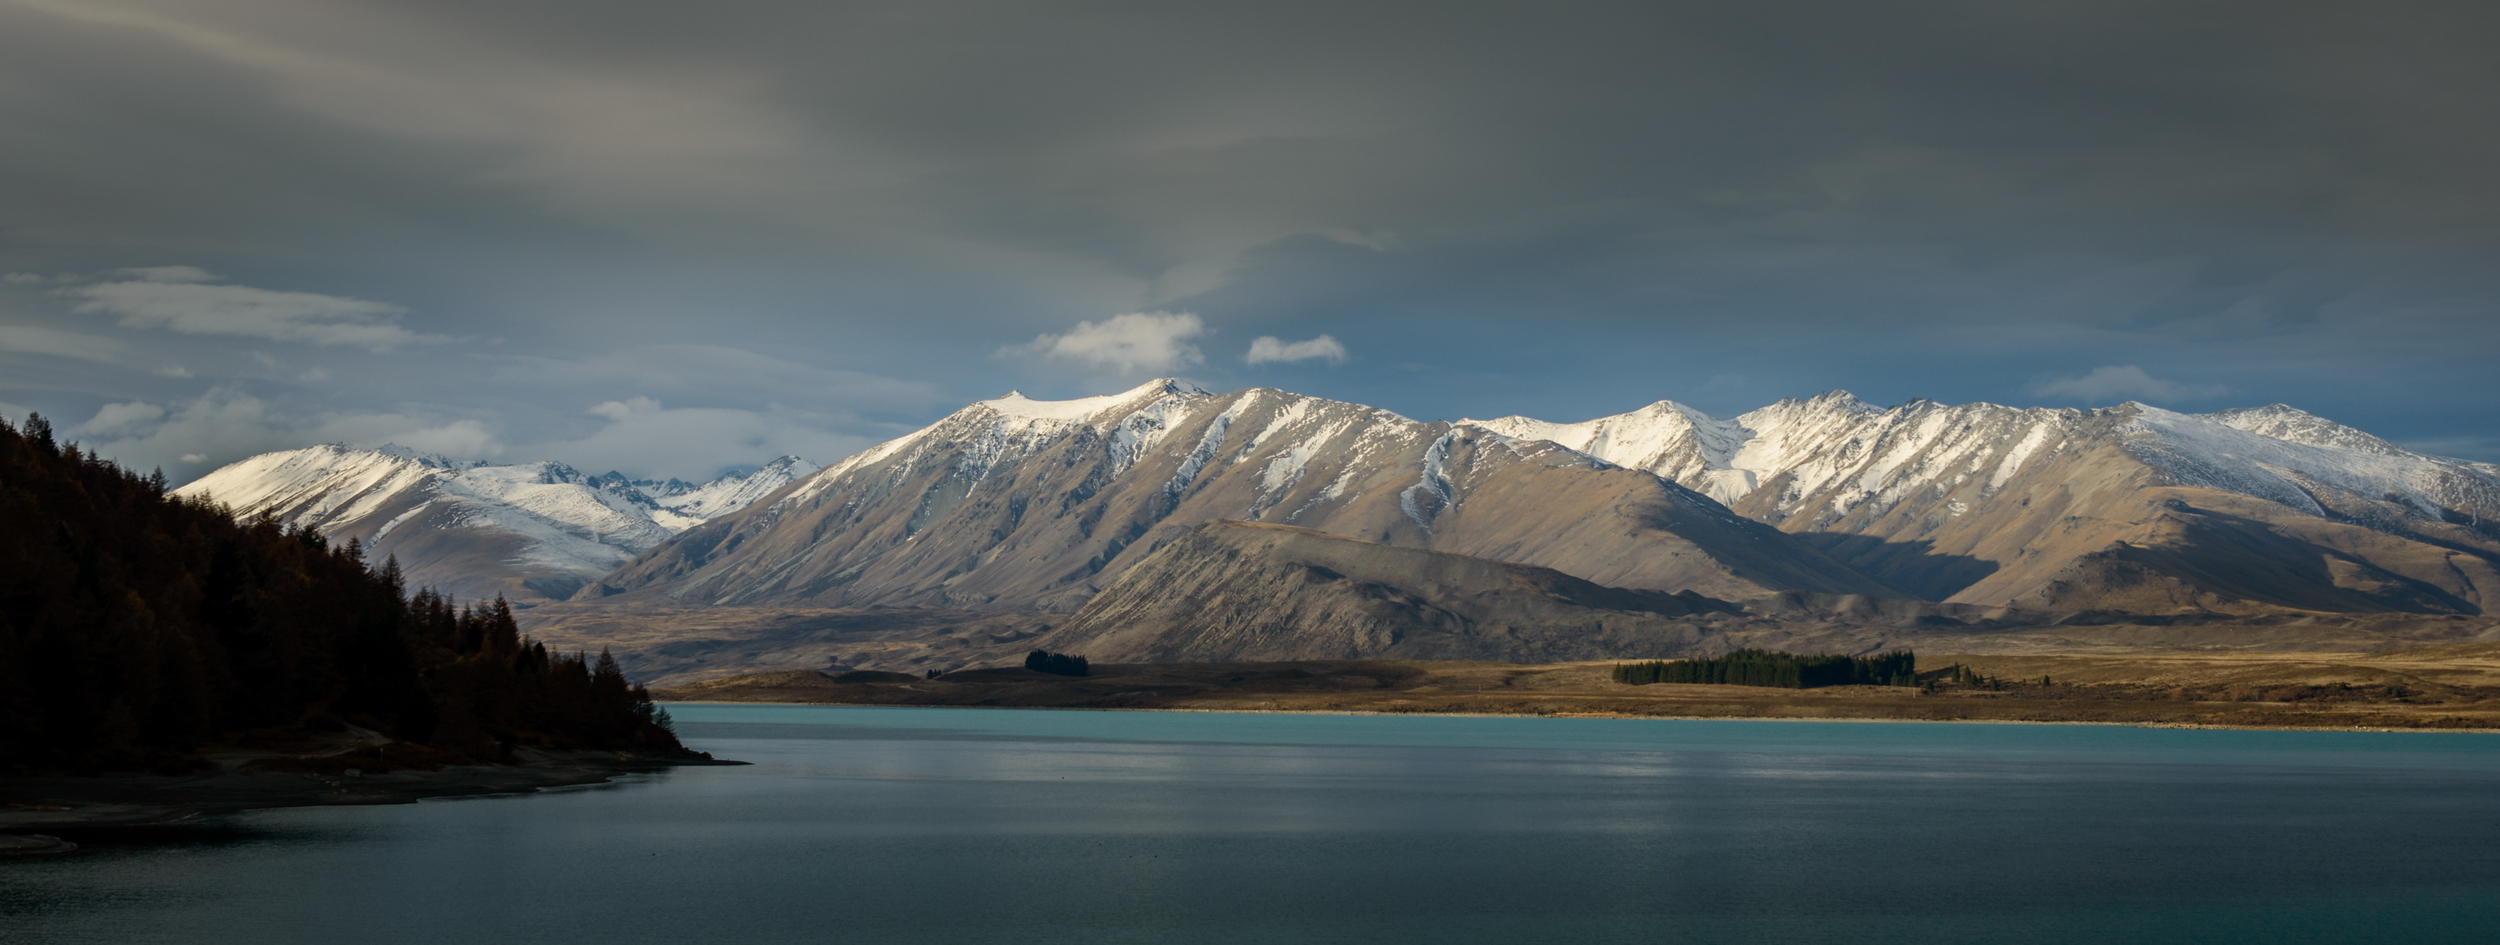 View from the Camp, Tekapo